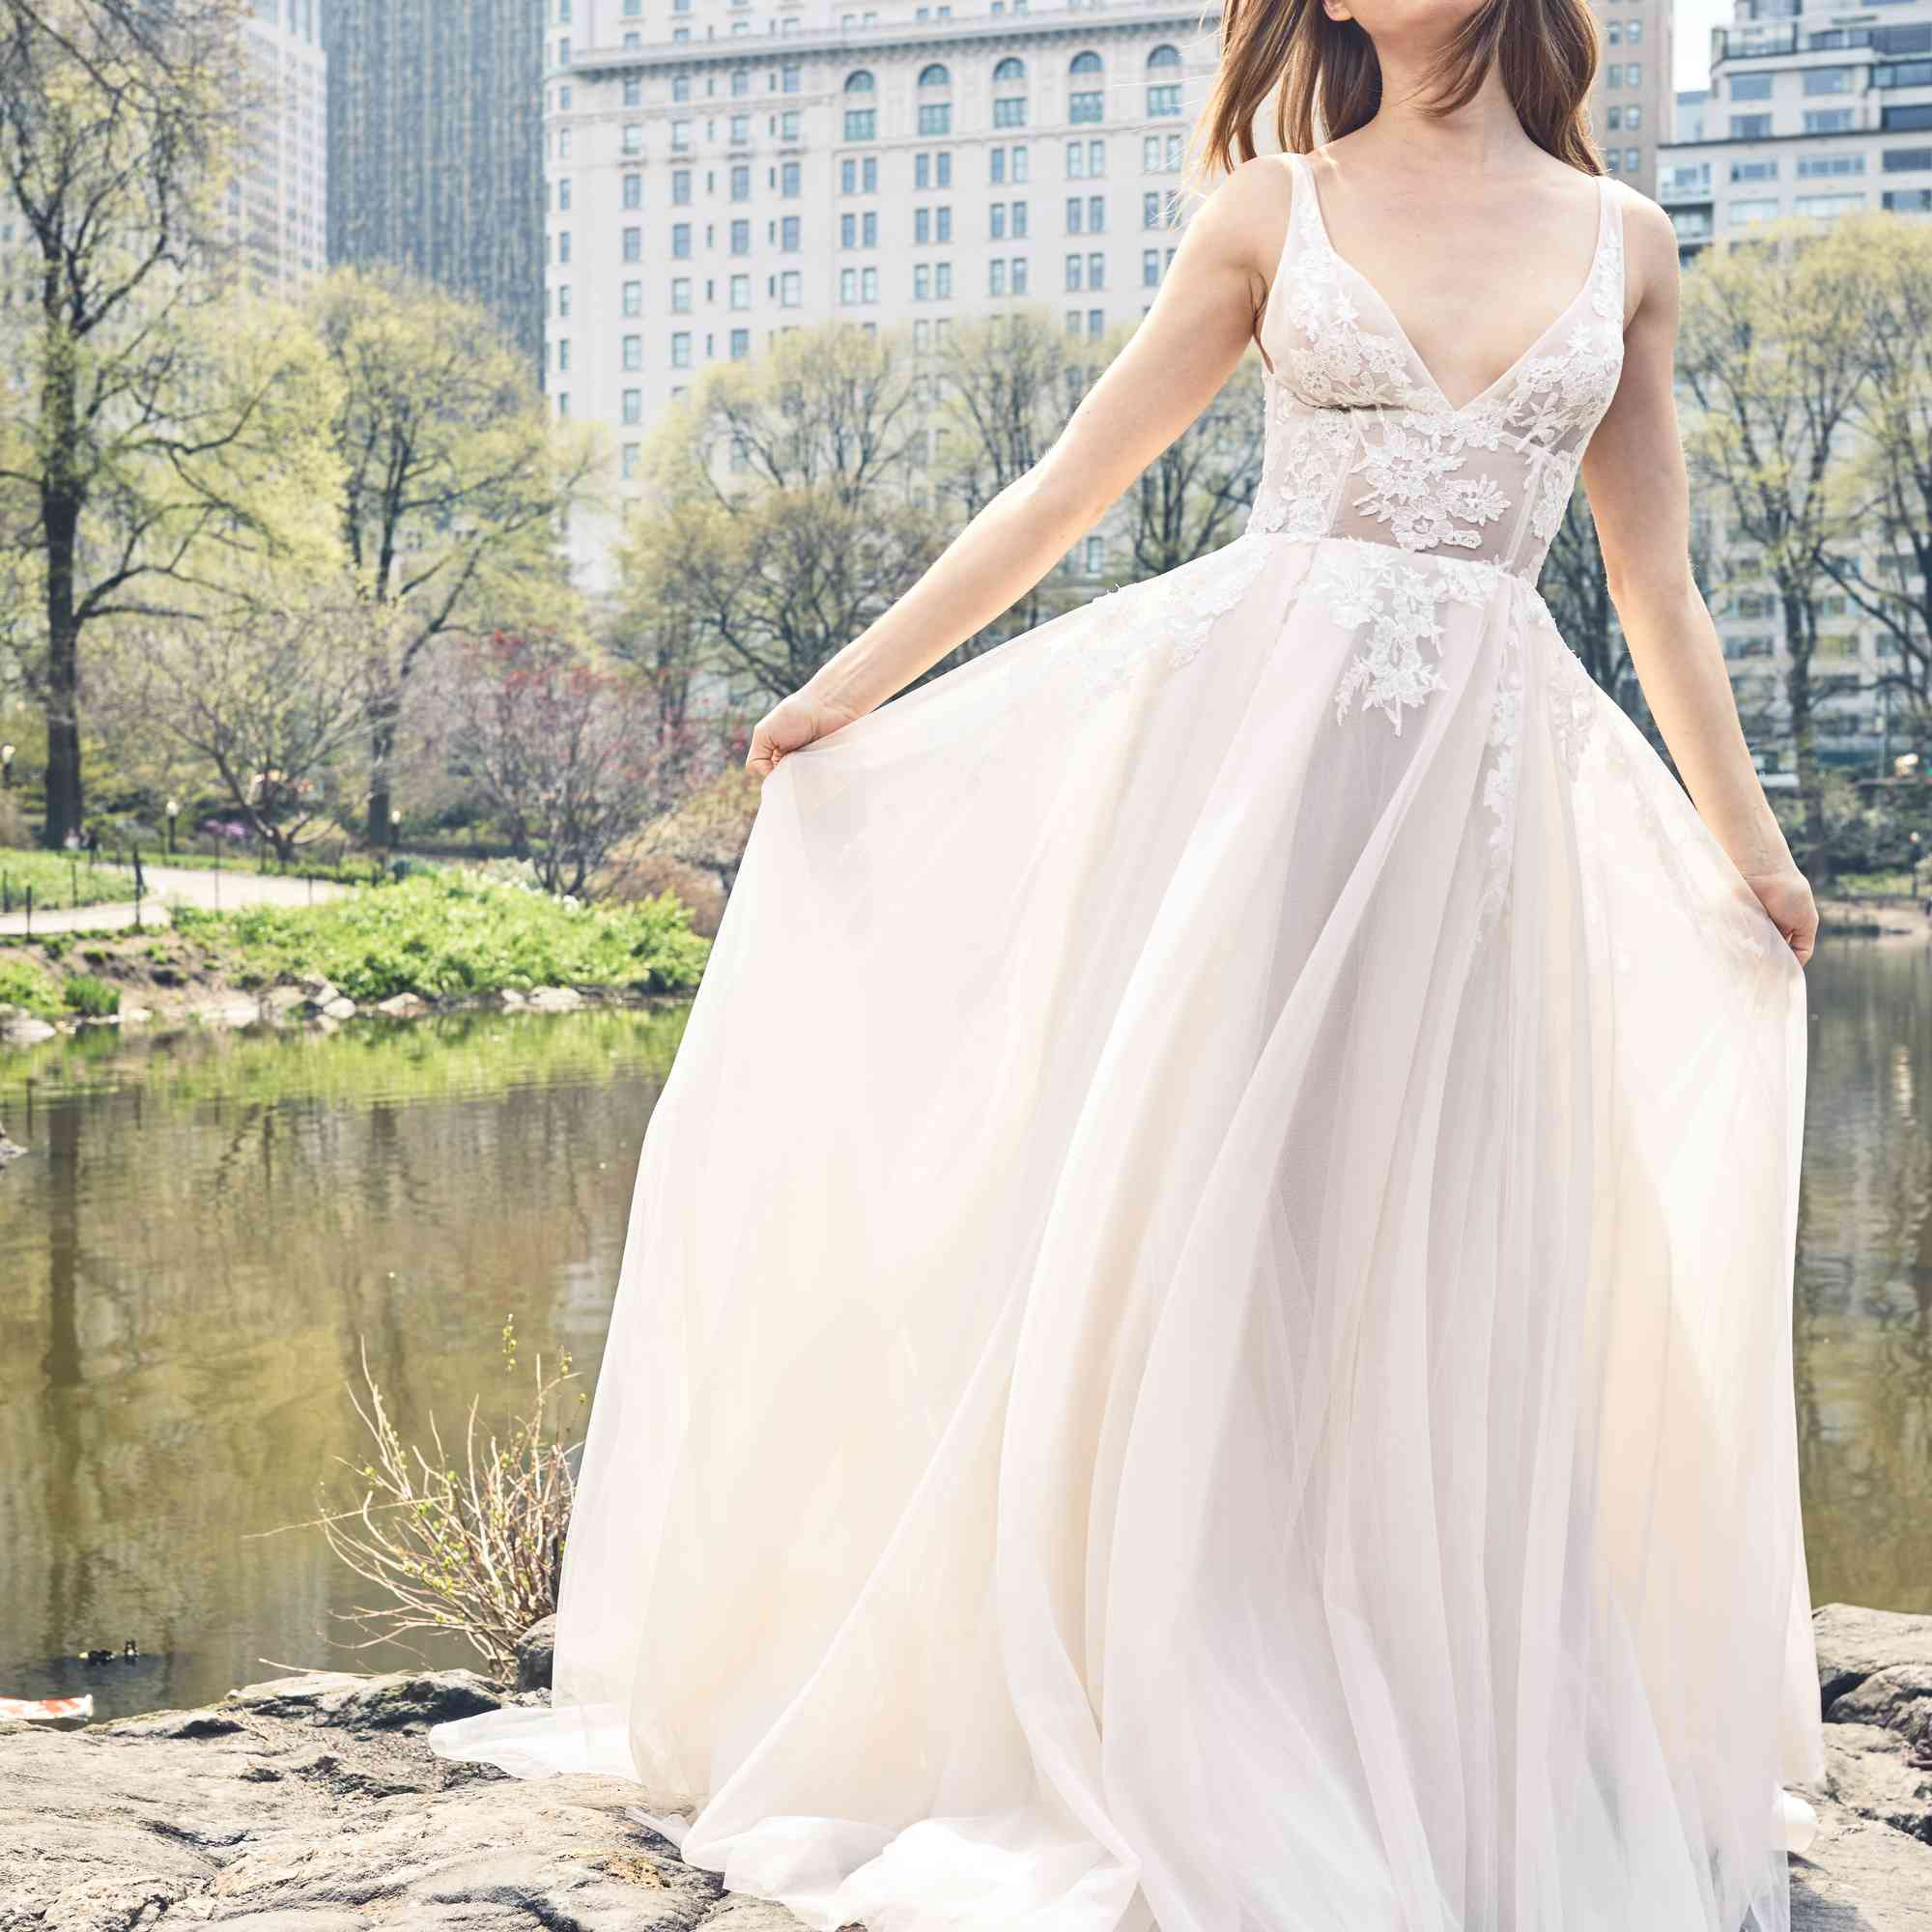 Ethereal Wedding Dress.7 Dreamy Ethereal Wedding Dresses For The Romantic Bride